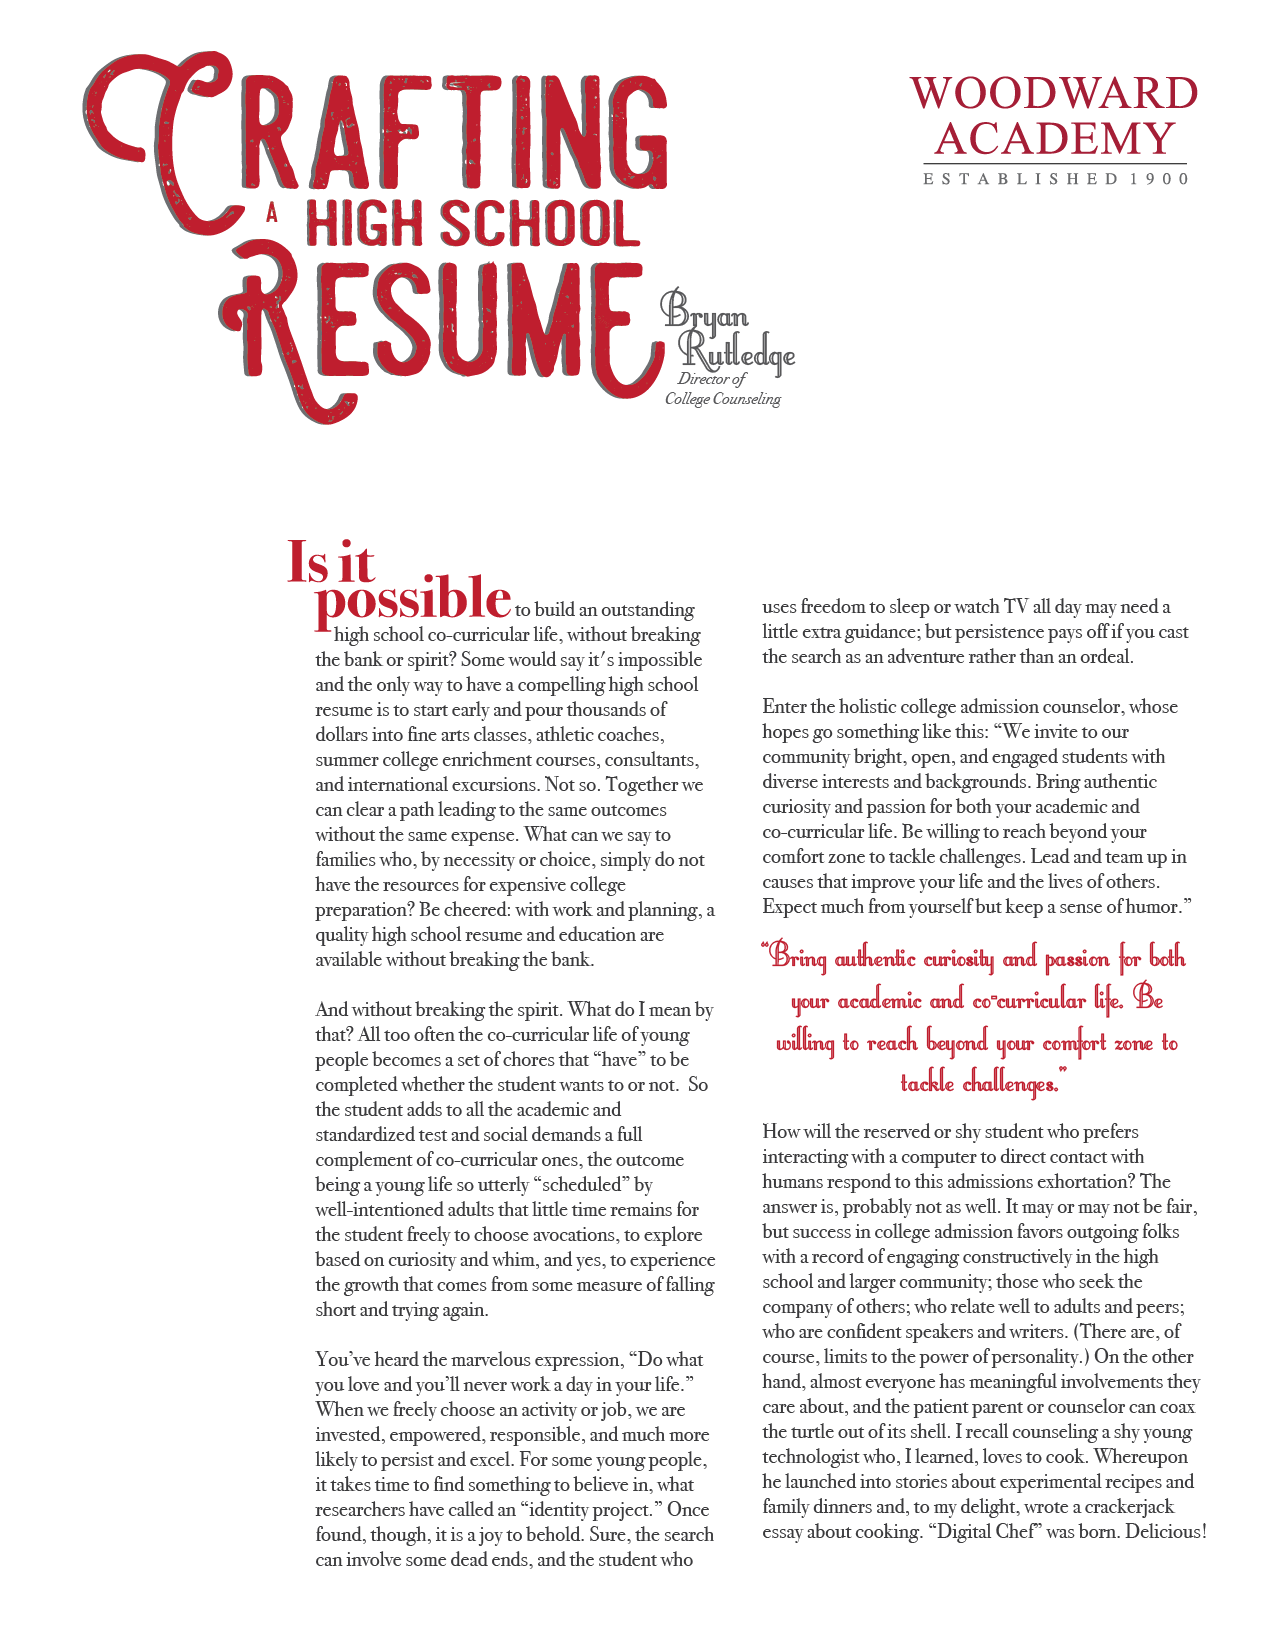 Crafting A High School Resume